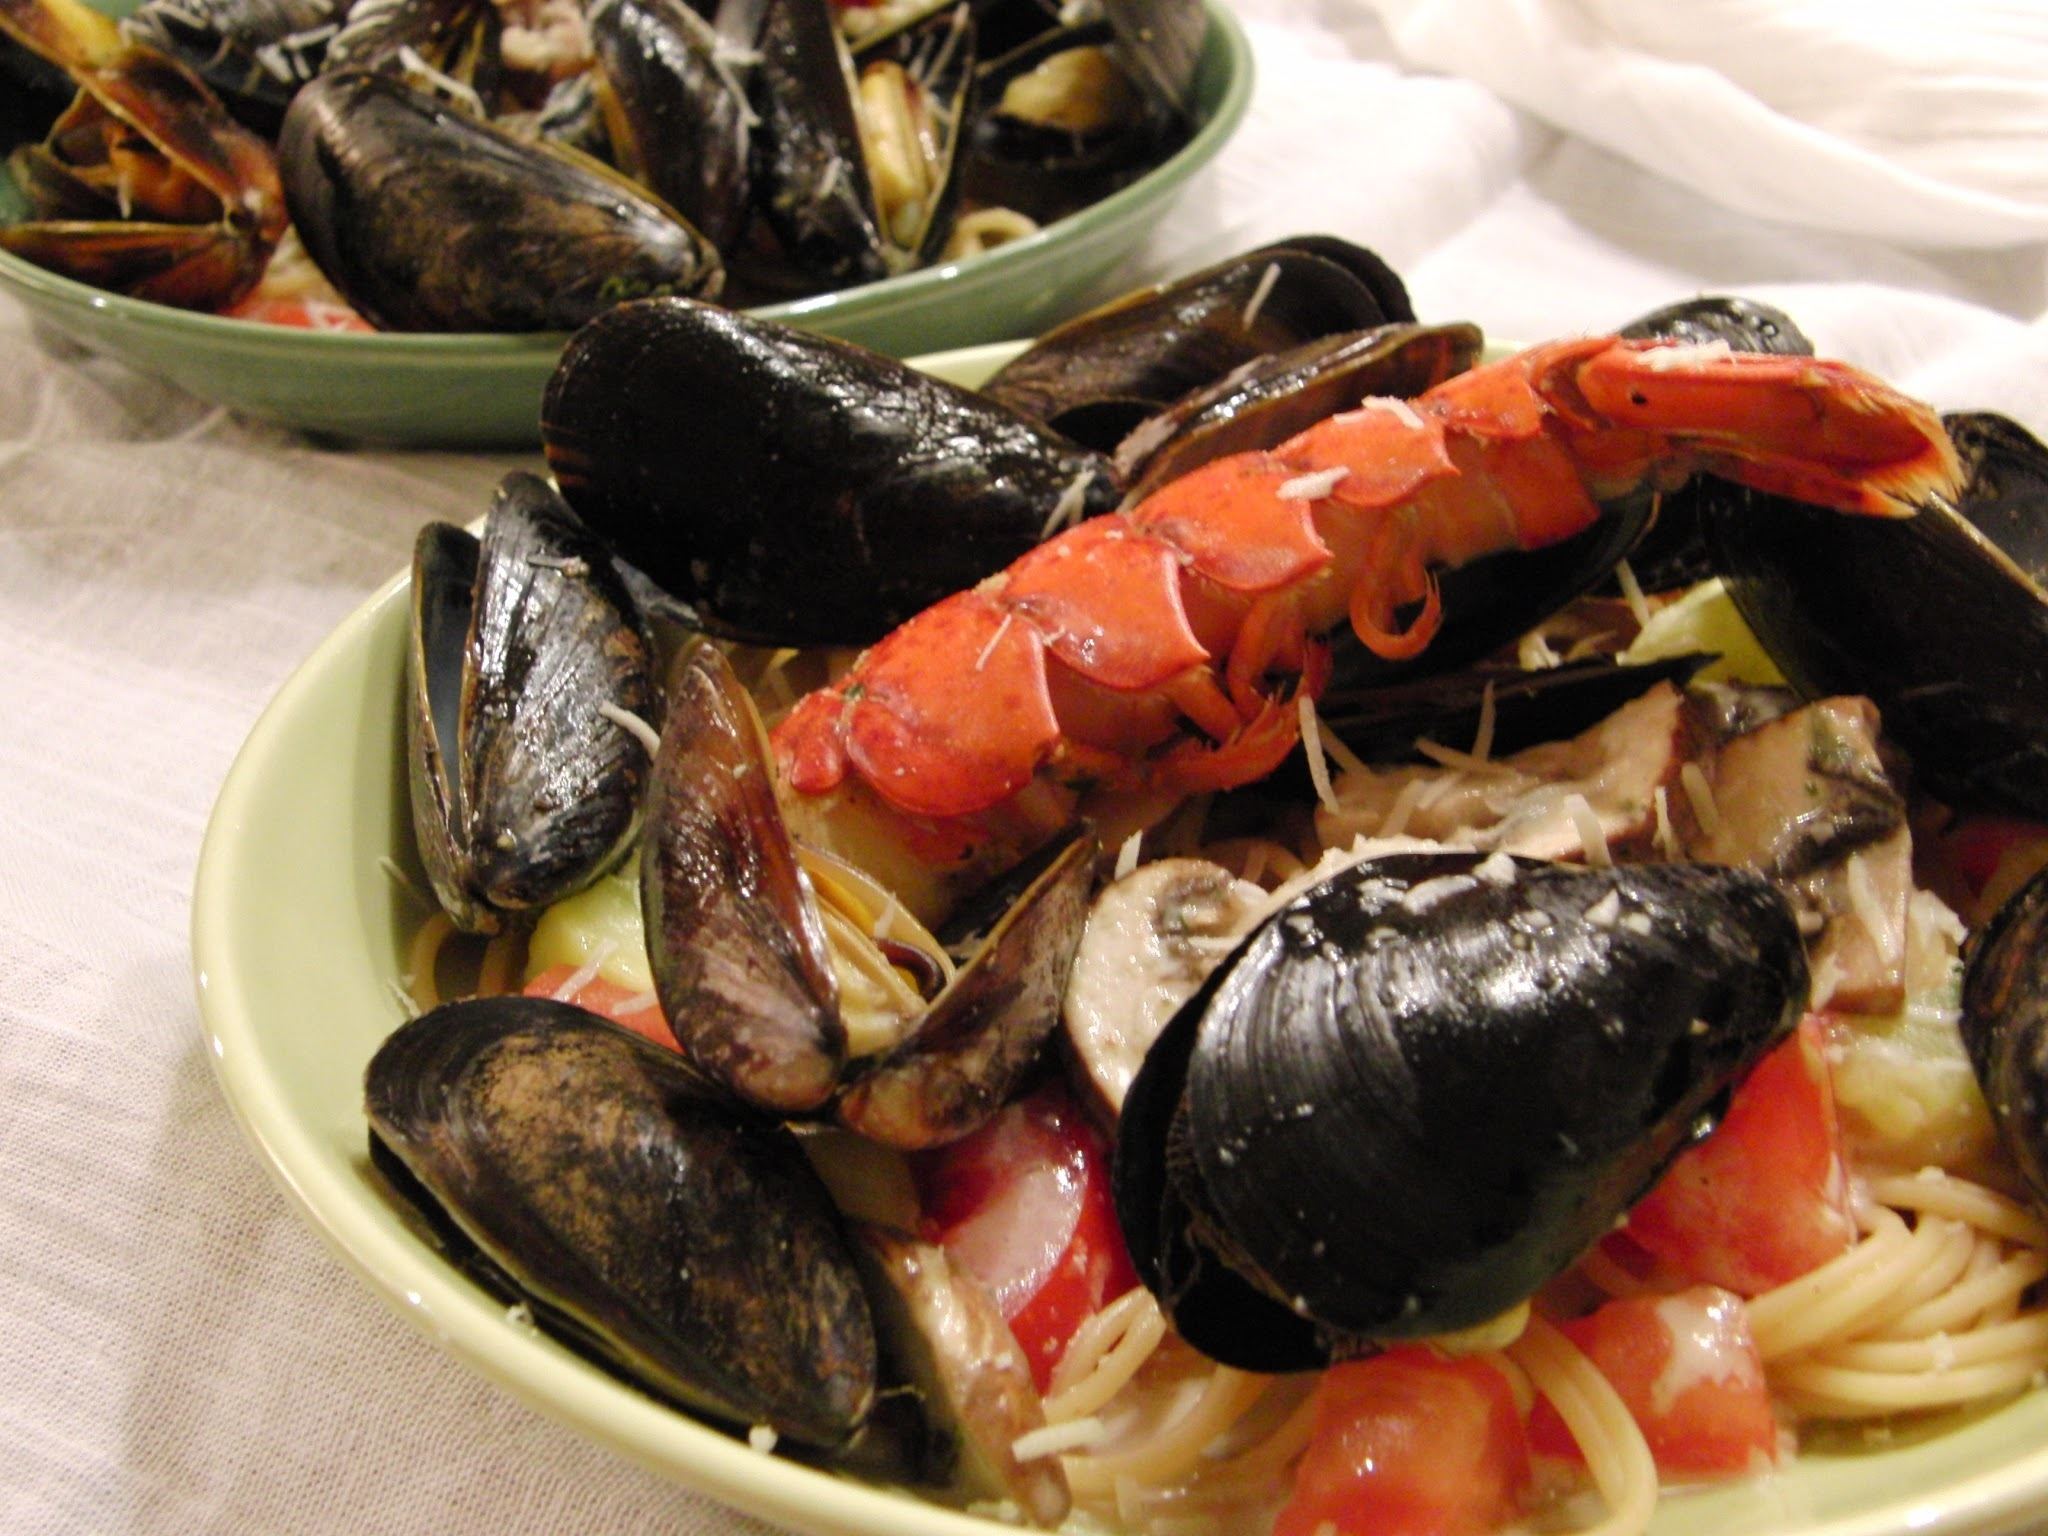 A romantic meal at home...  Pasta with Steamed Mussels and Lobster, with a Creamy White Wine Sauce